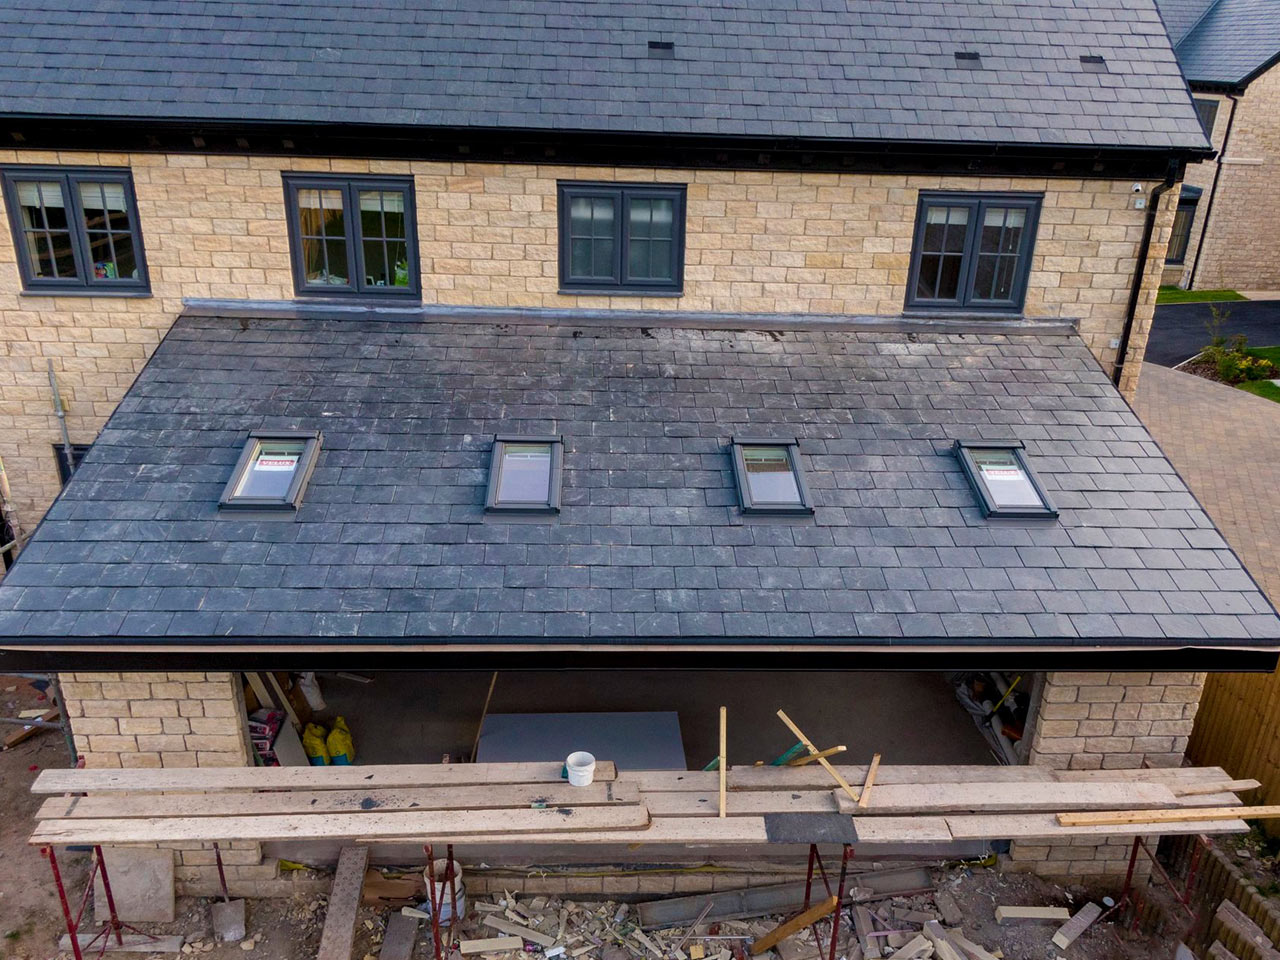 Extension Roofing in Norden